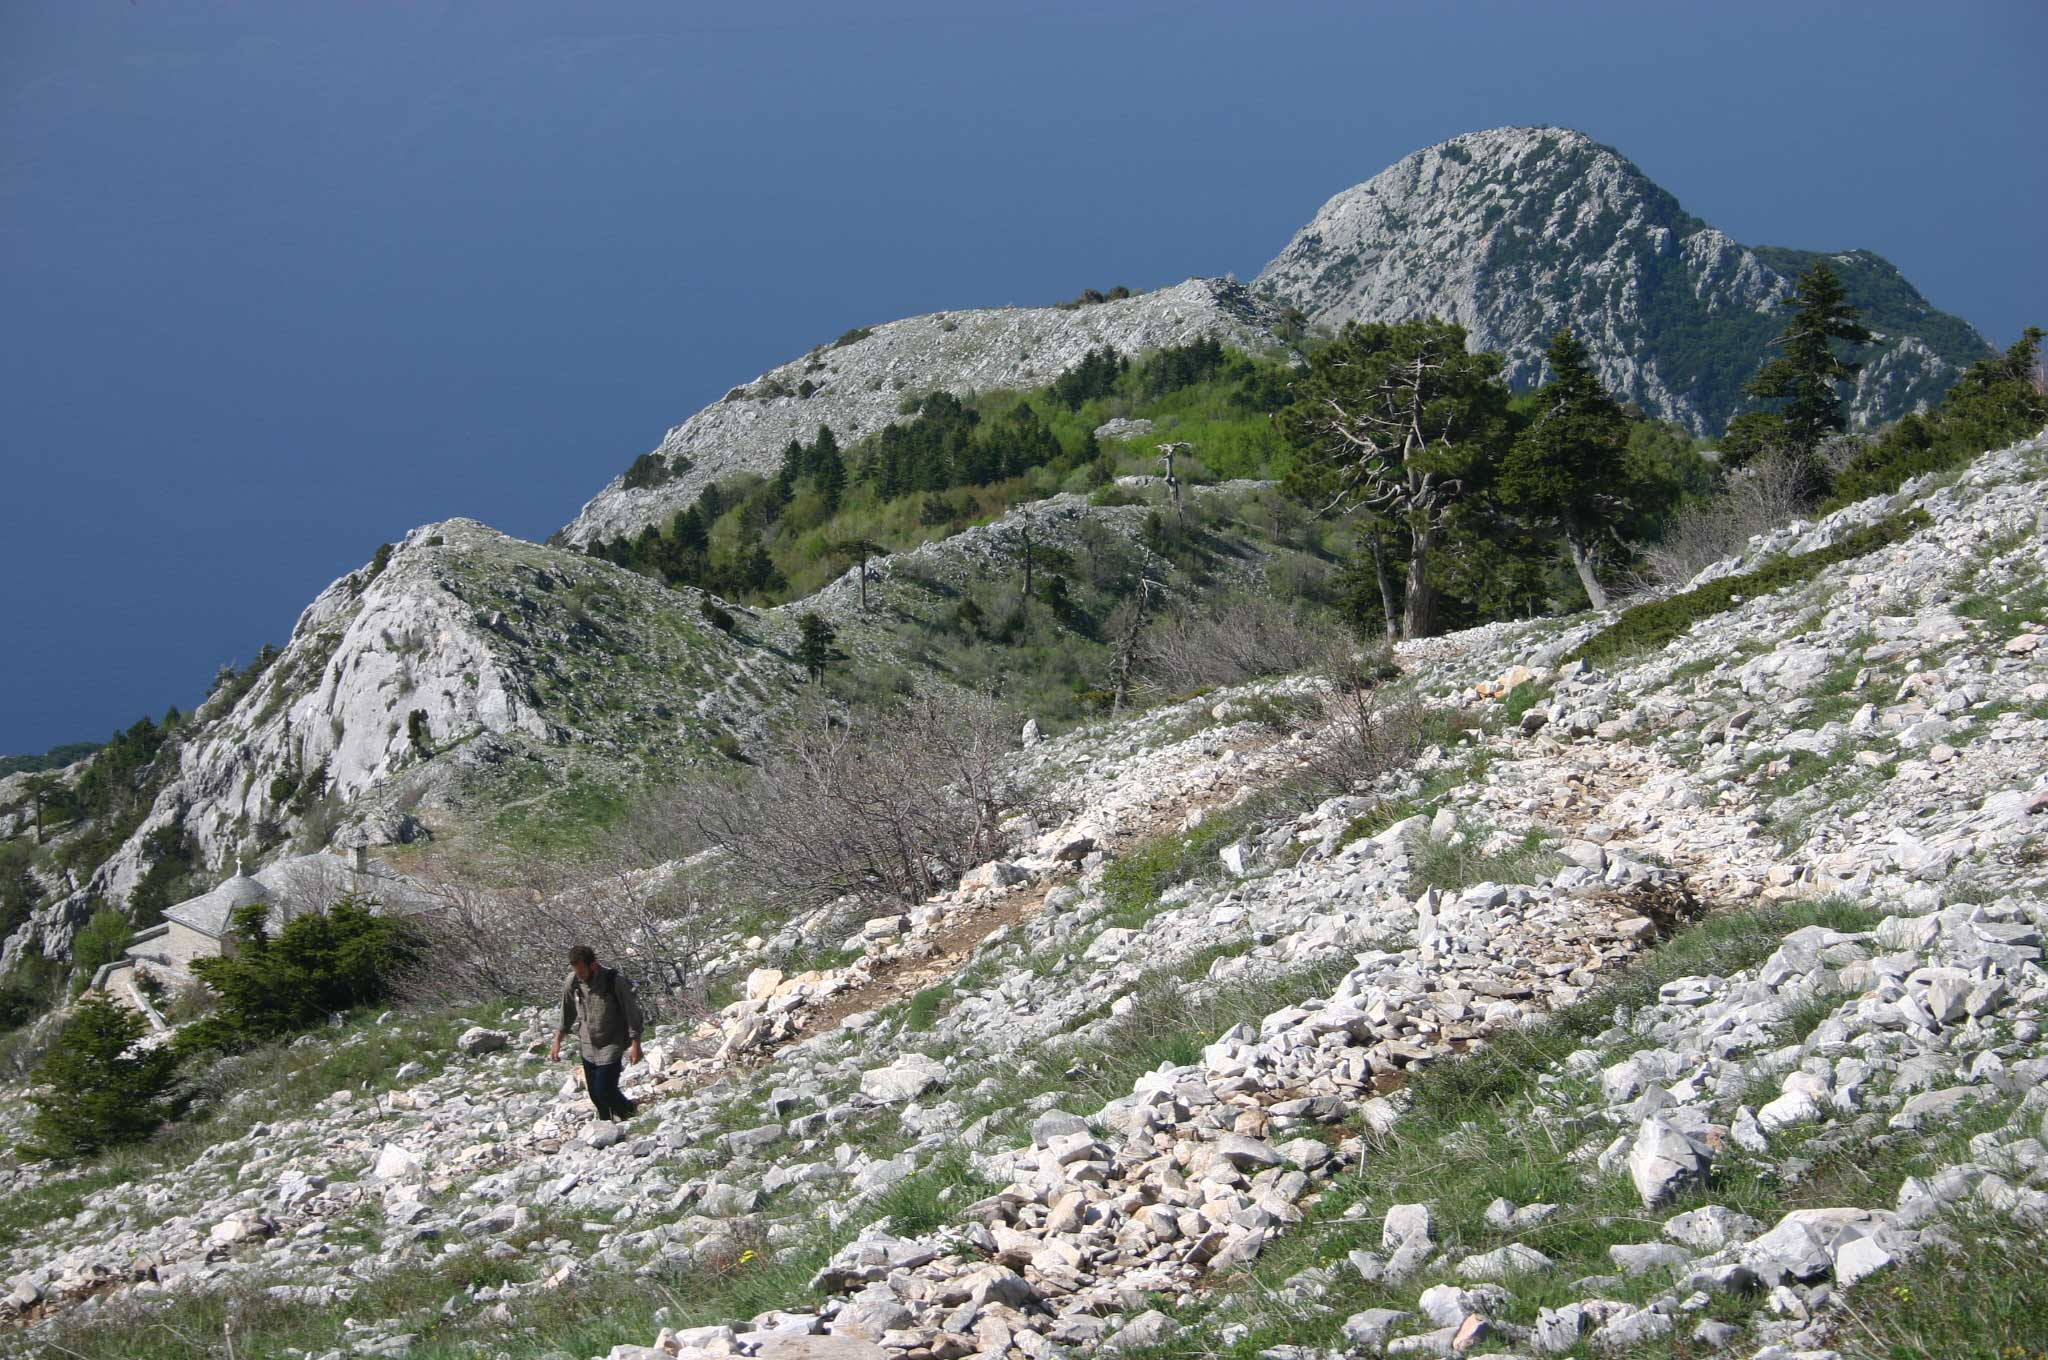 Mount Athos: Mt Athos - Above Panaghias - © William Mackesy